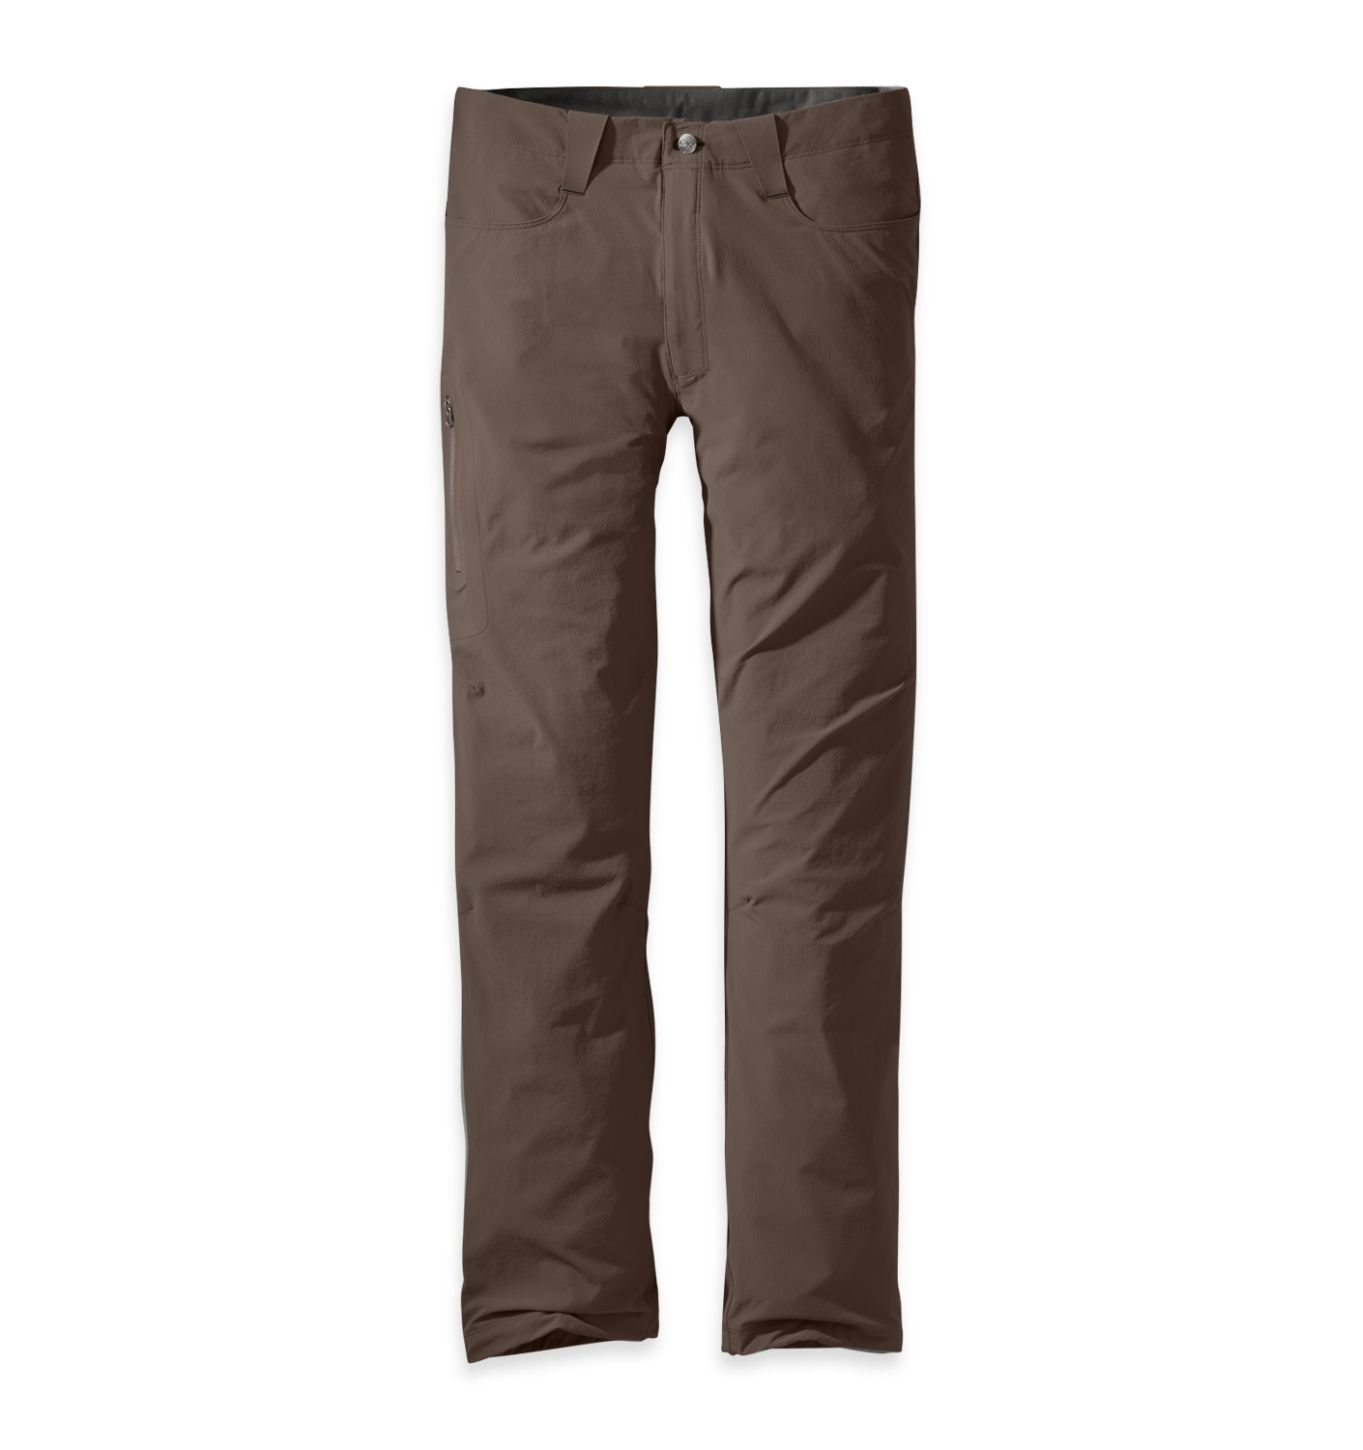 Outdoor Research Men's Ferrosi Pants mushroom-30